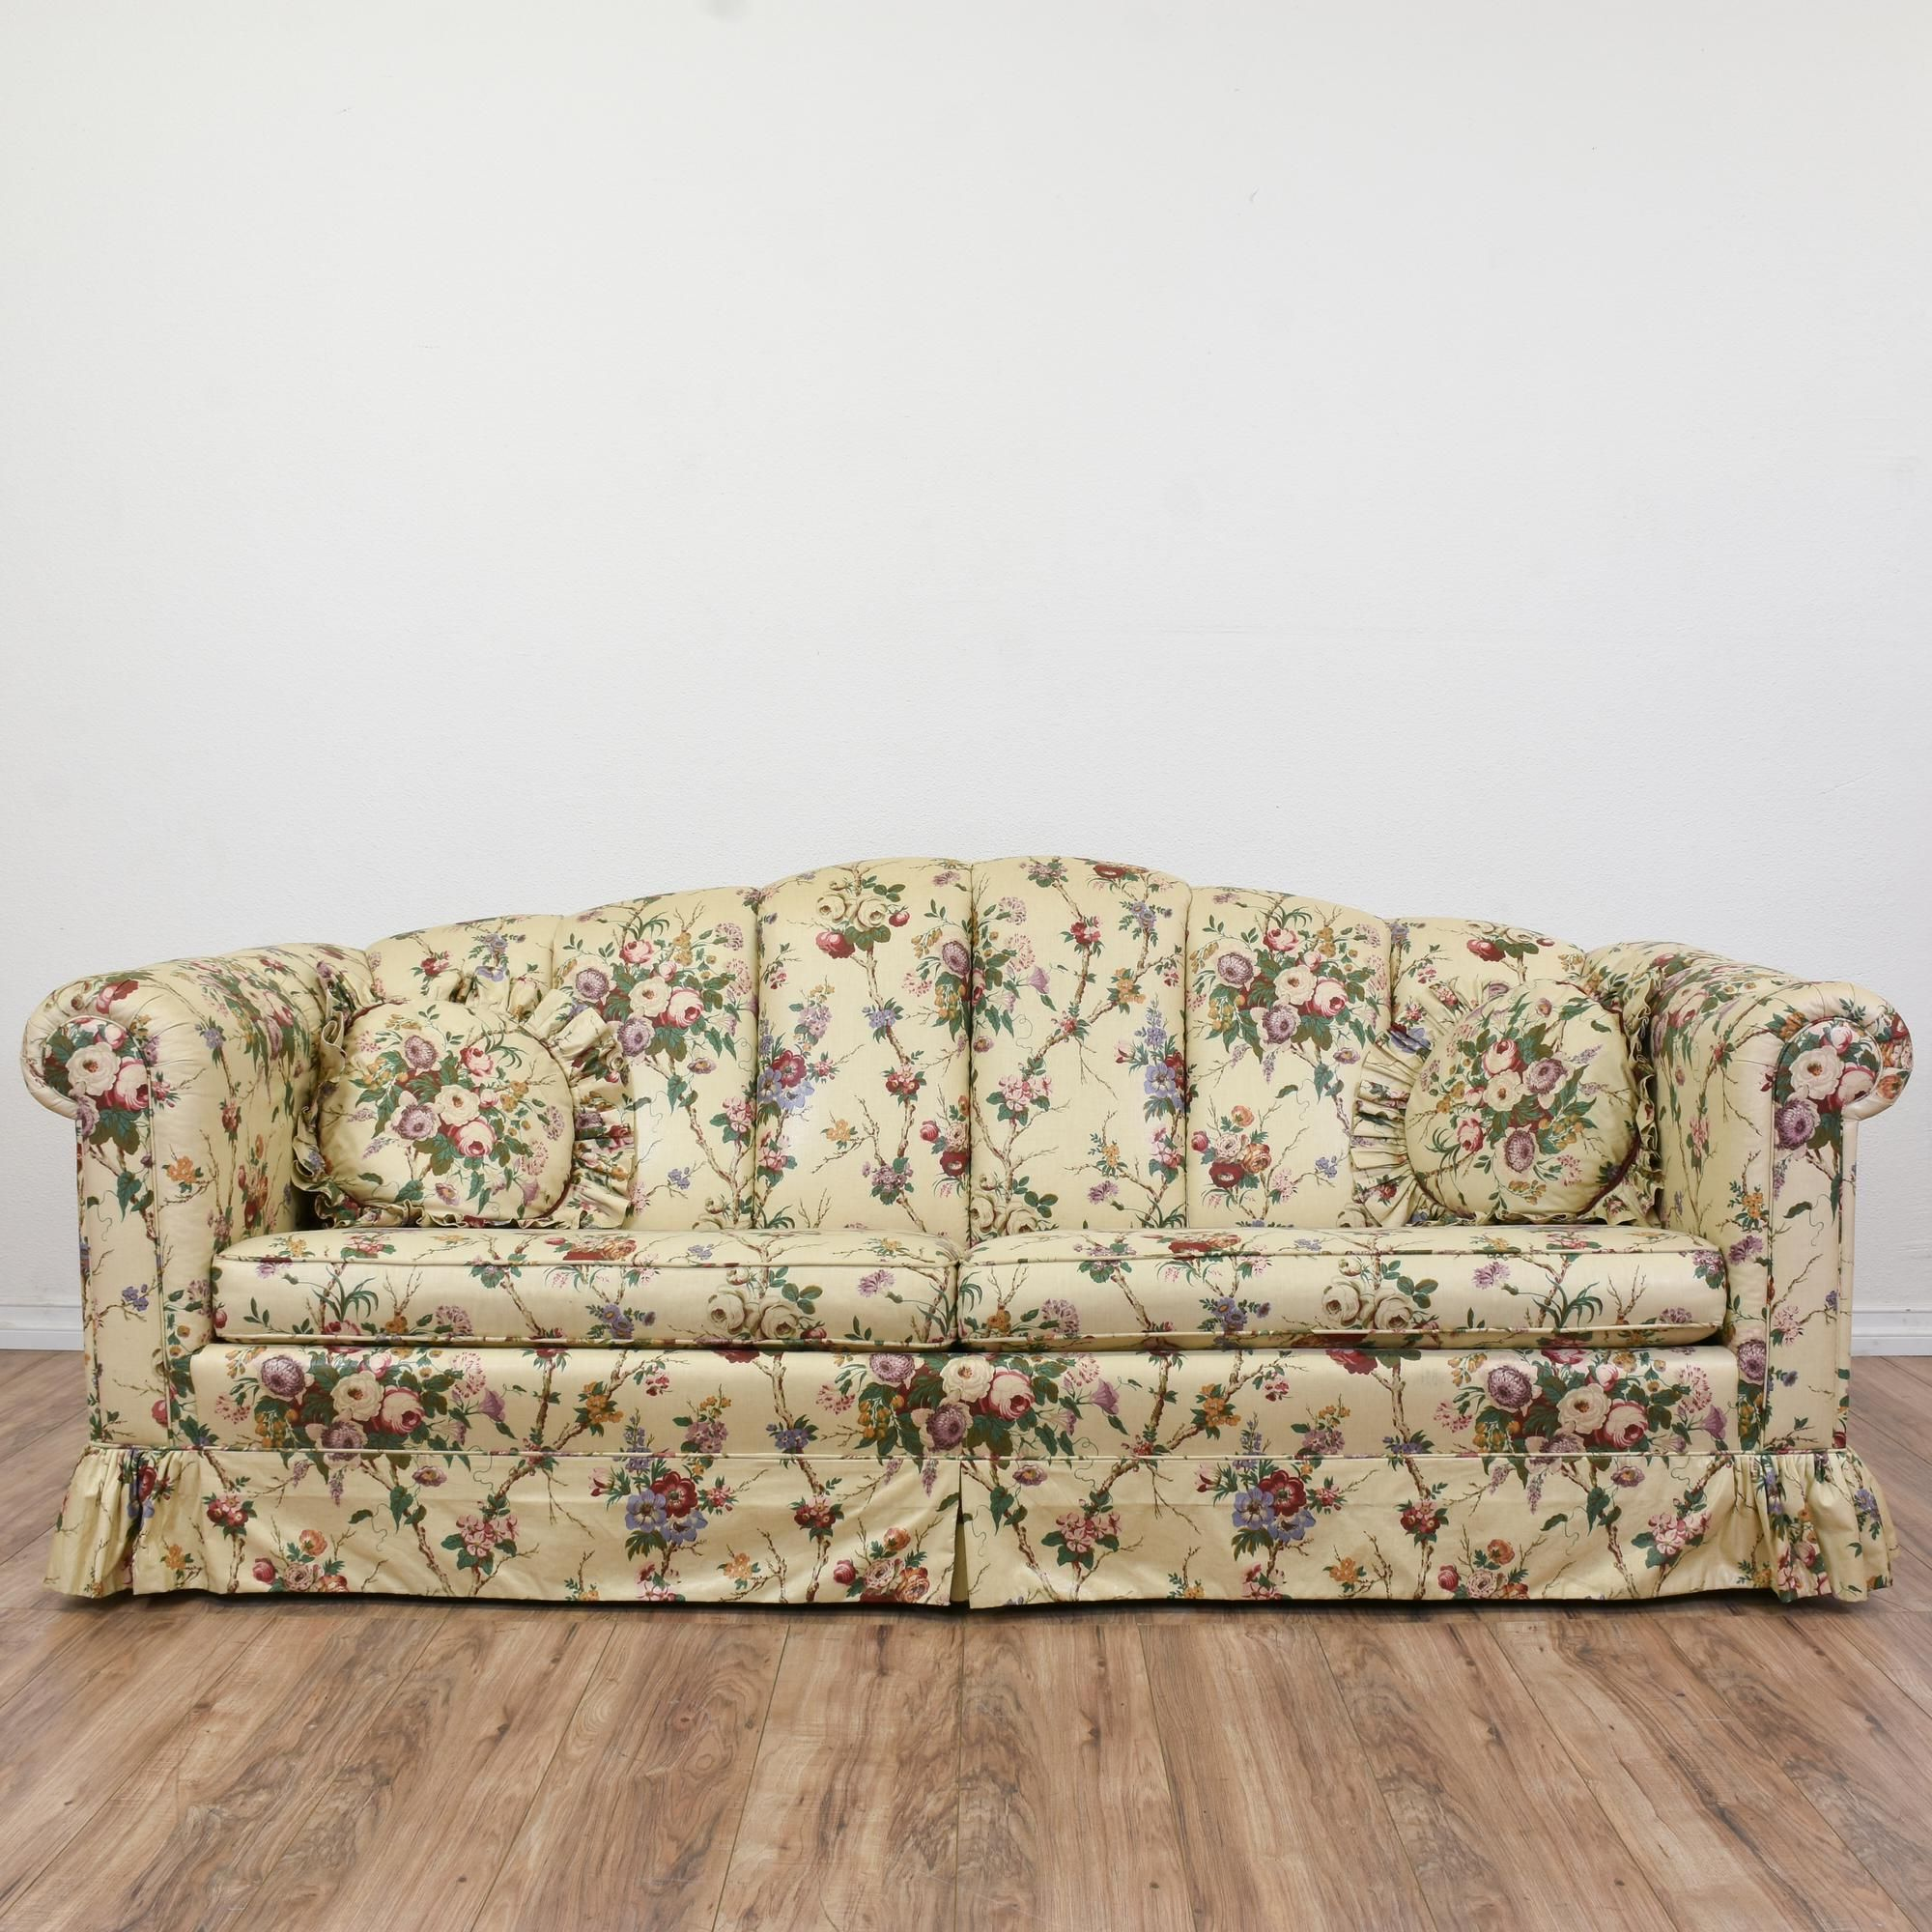 This sofa is upholstered in a durable off white beige pink and